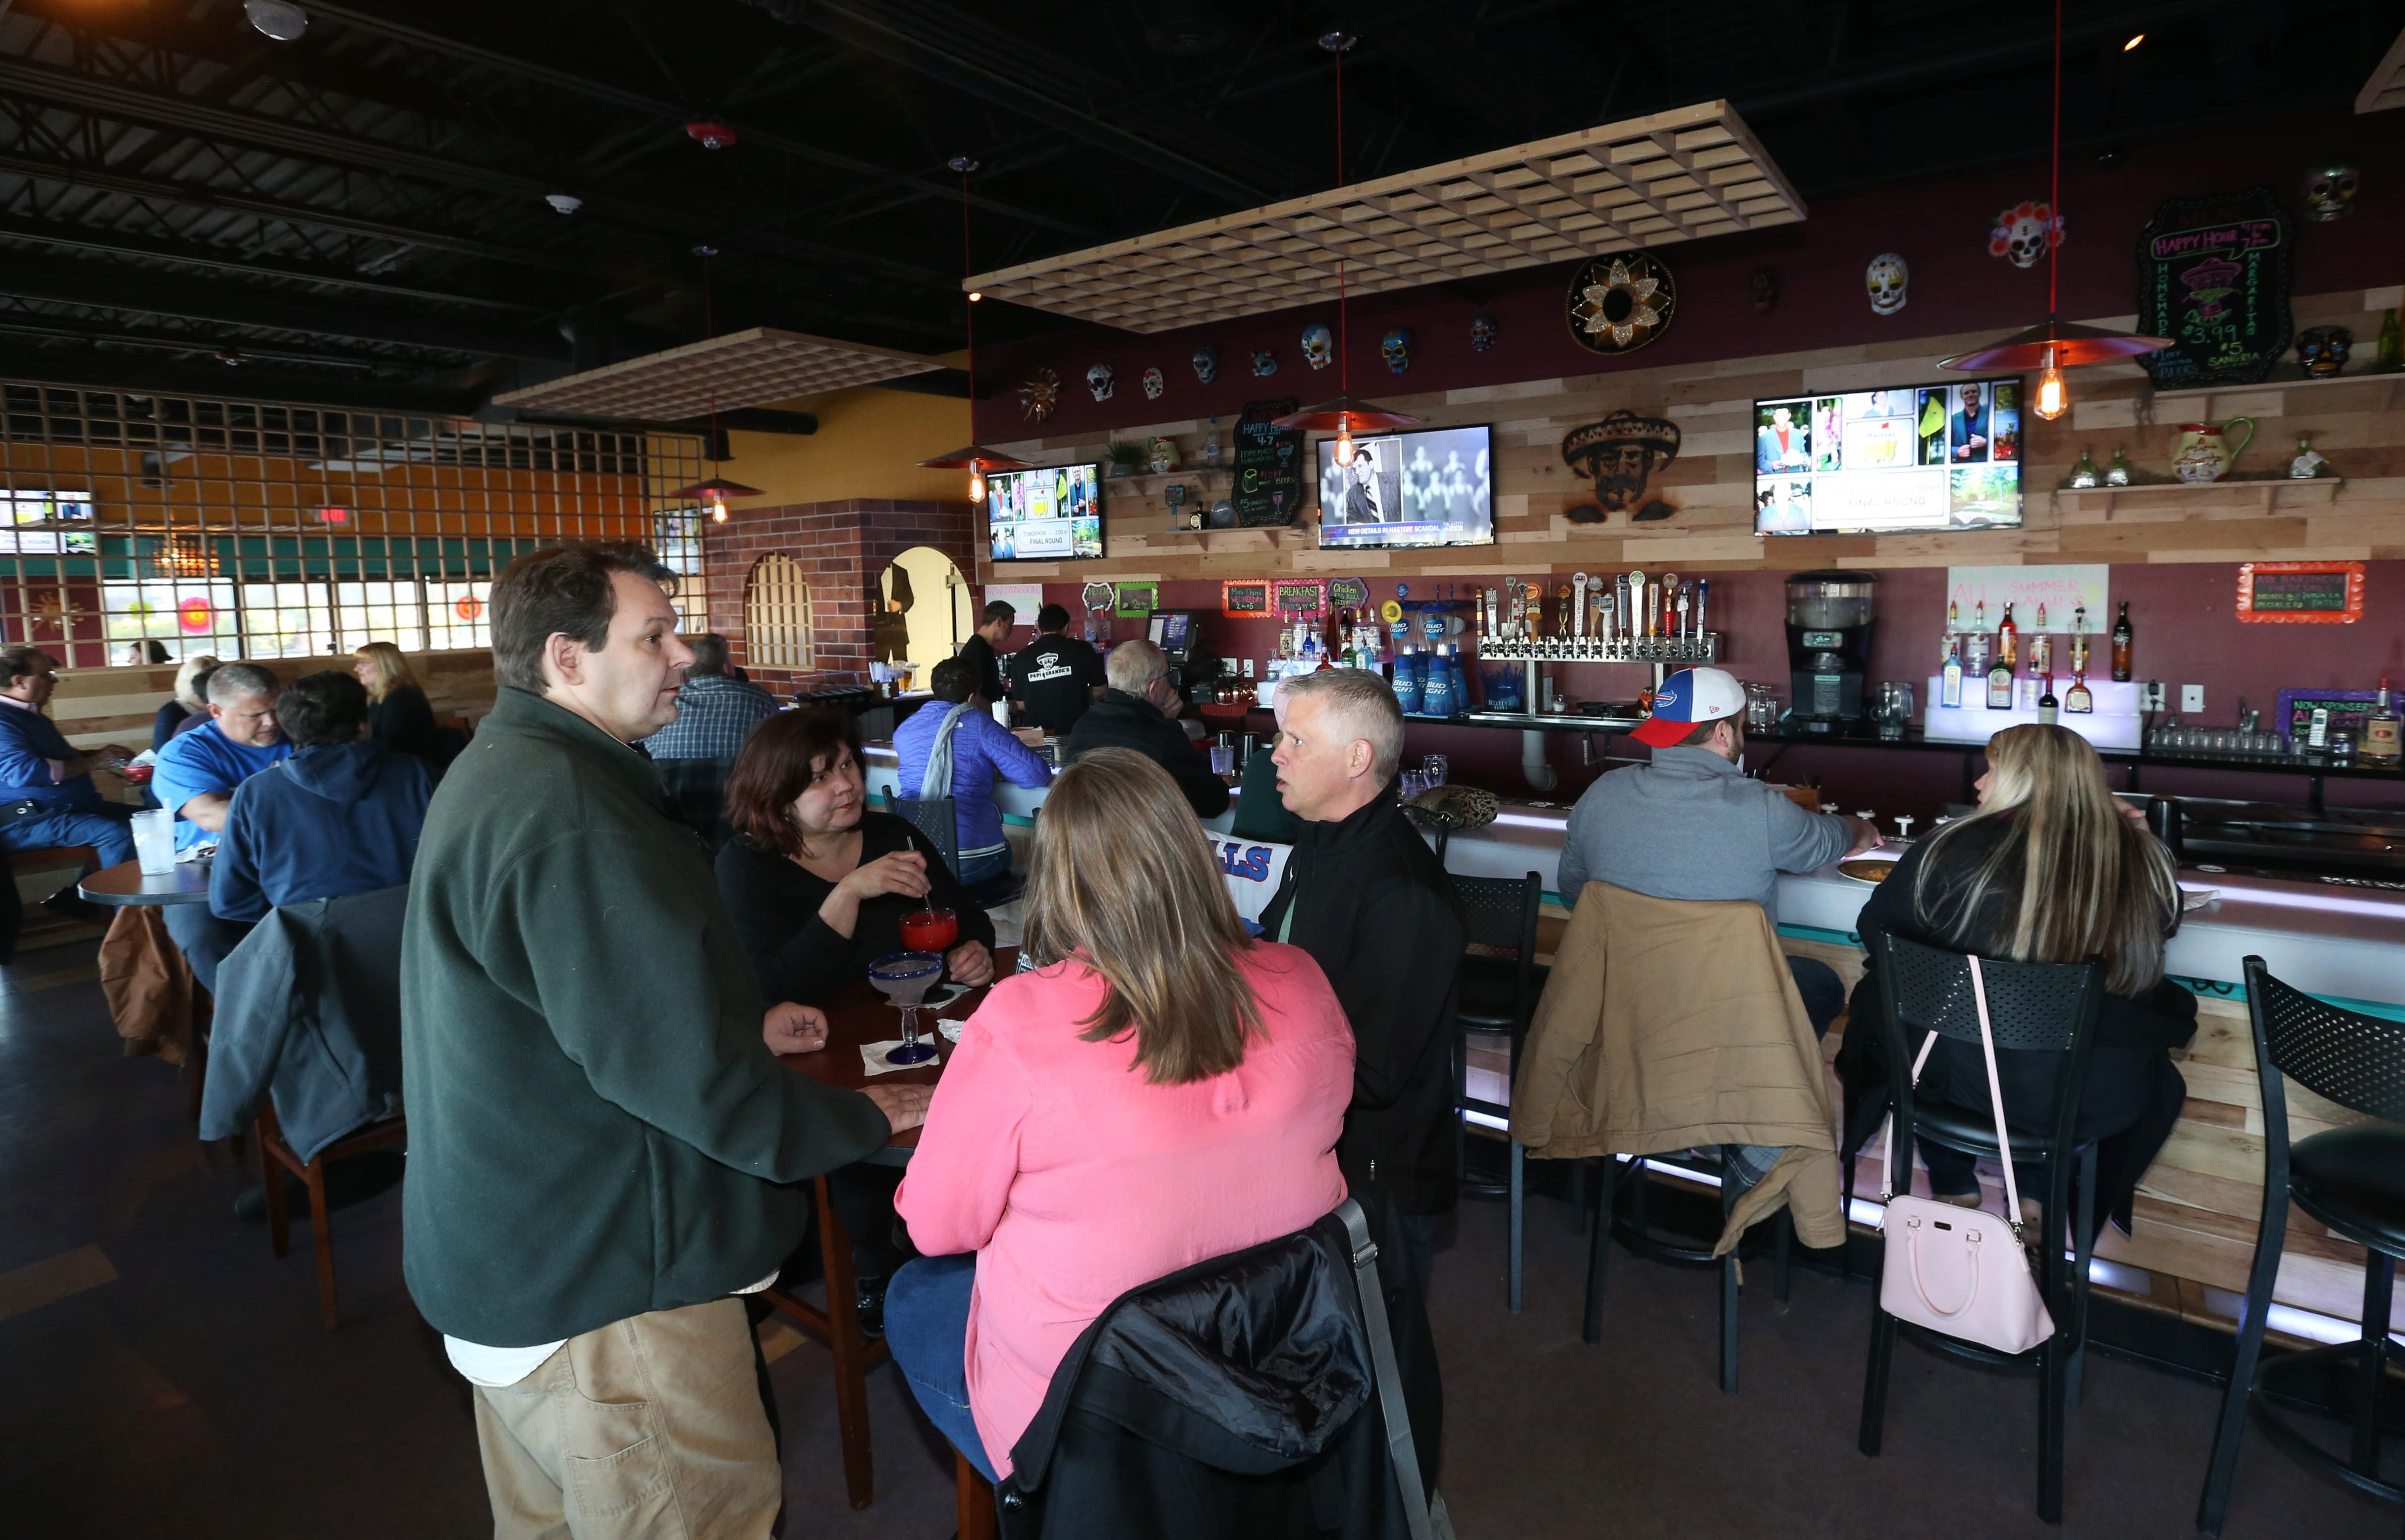 Papi Grande's Mexican Restaurant  & Cantina opened recently at 4276 Maple Road in Amherst next to the AMC Maple Ridge 8 theater in space formerly occupied by The U.